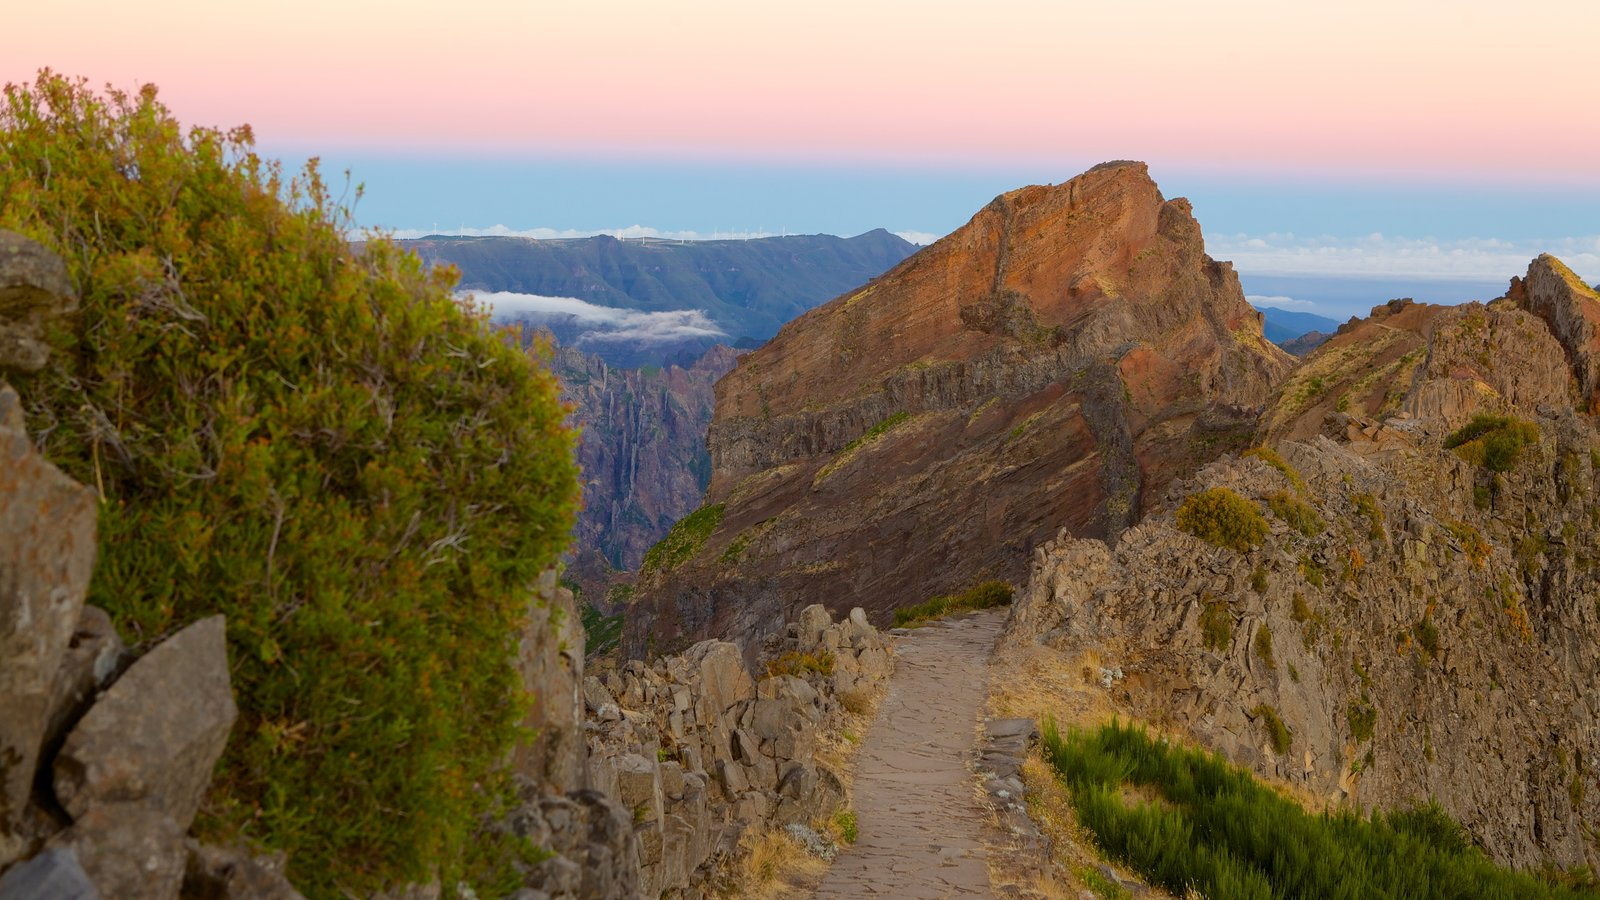 Pico do Ariero showing a sunset and mountains